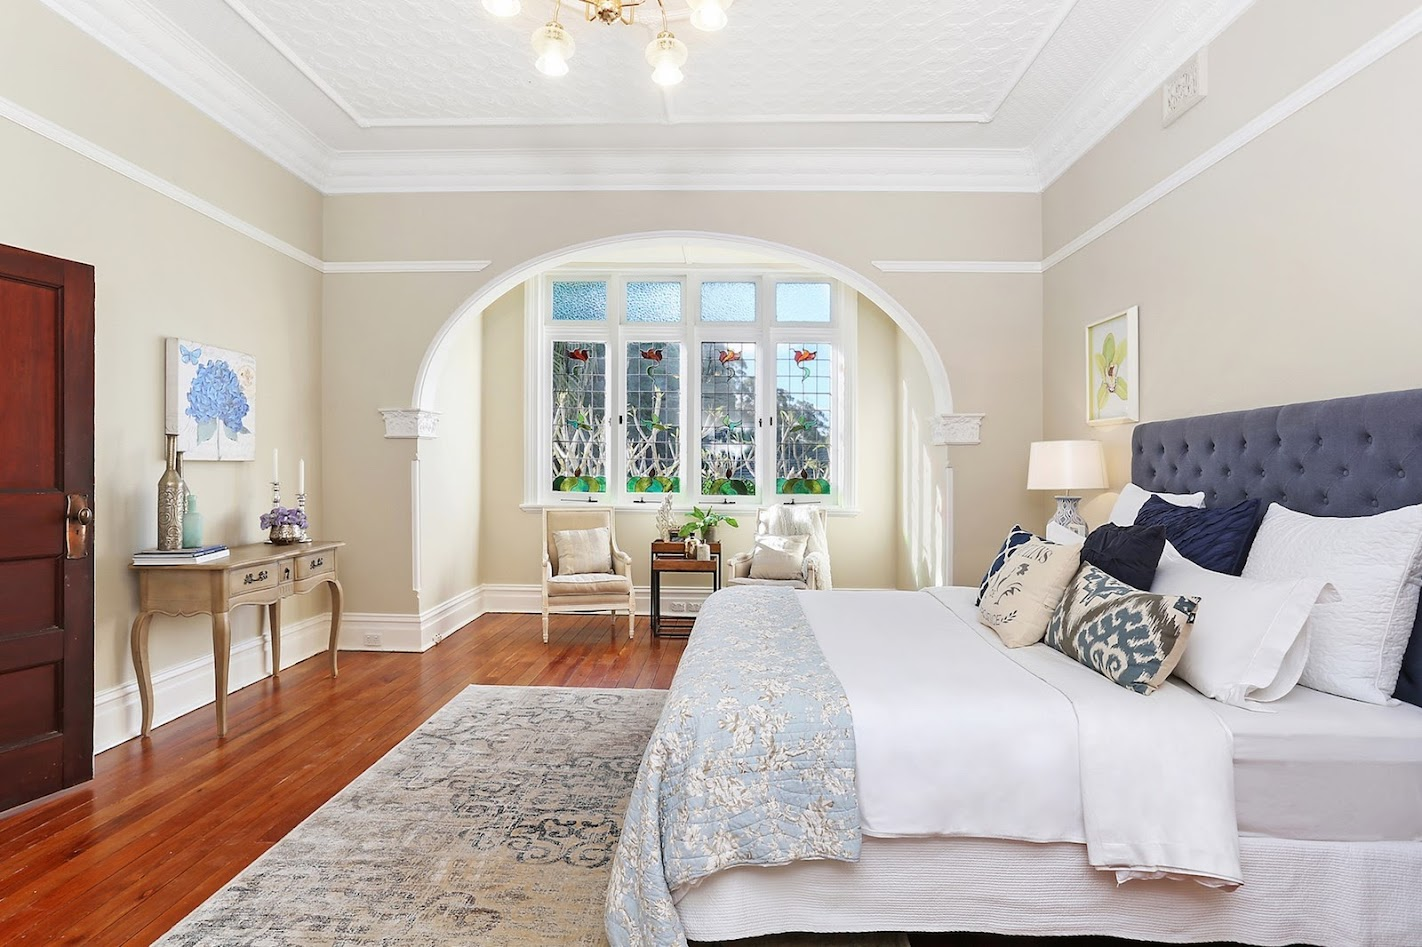 Beautiful period leadlight and ornate bedroom decoration at Blairgowrie, 32 Abuklea Road, Epping NSW 2121